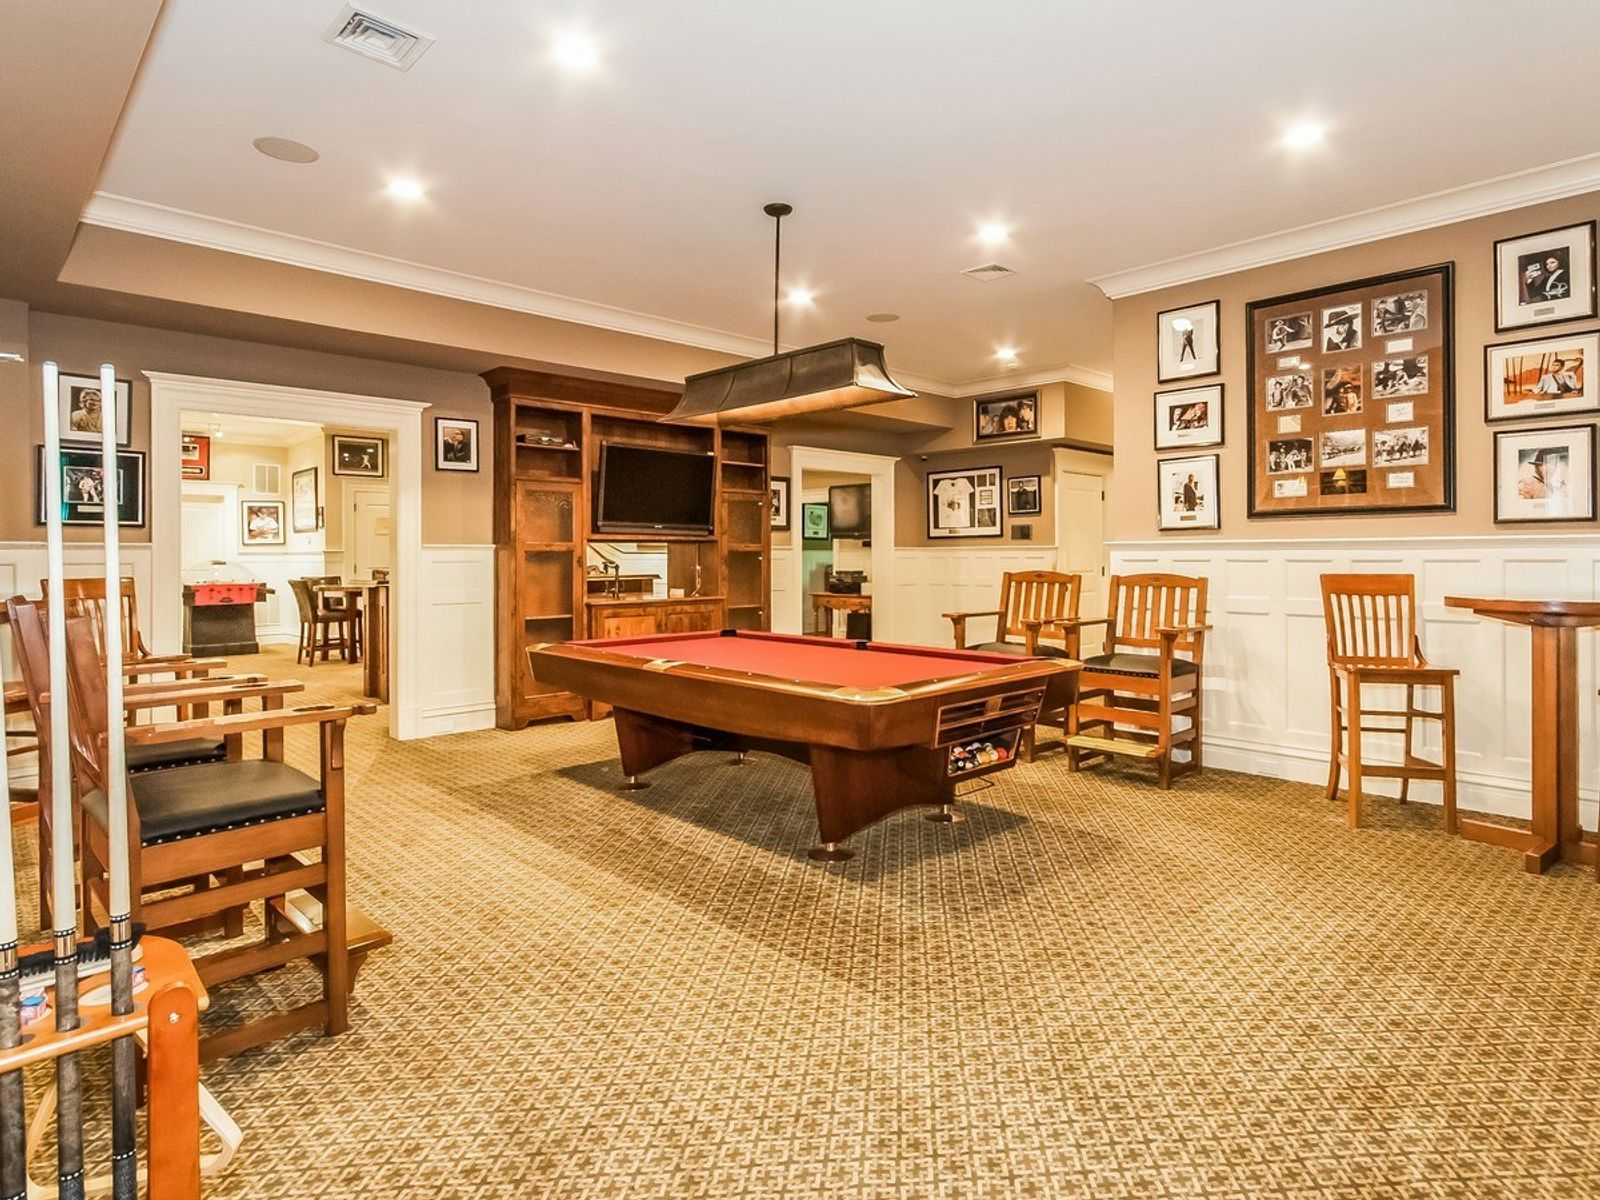 Billiard Room with Adjacent Family Room and Bar